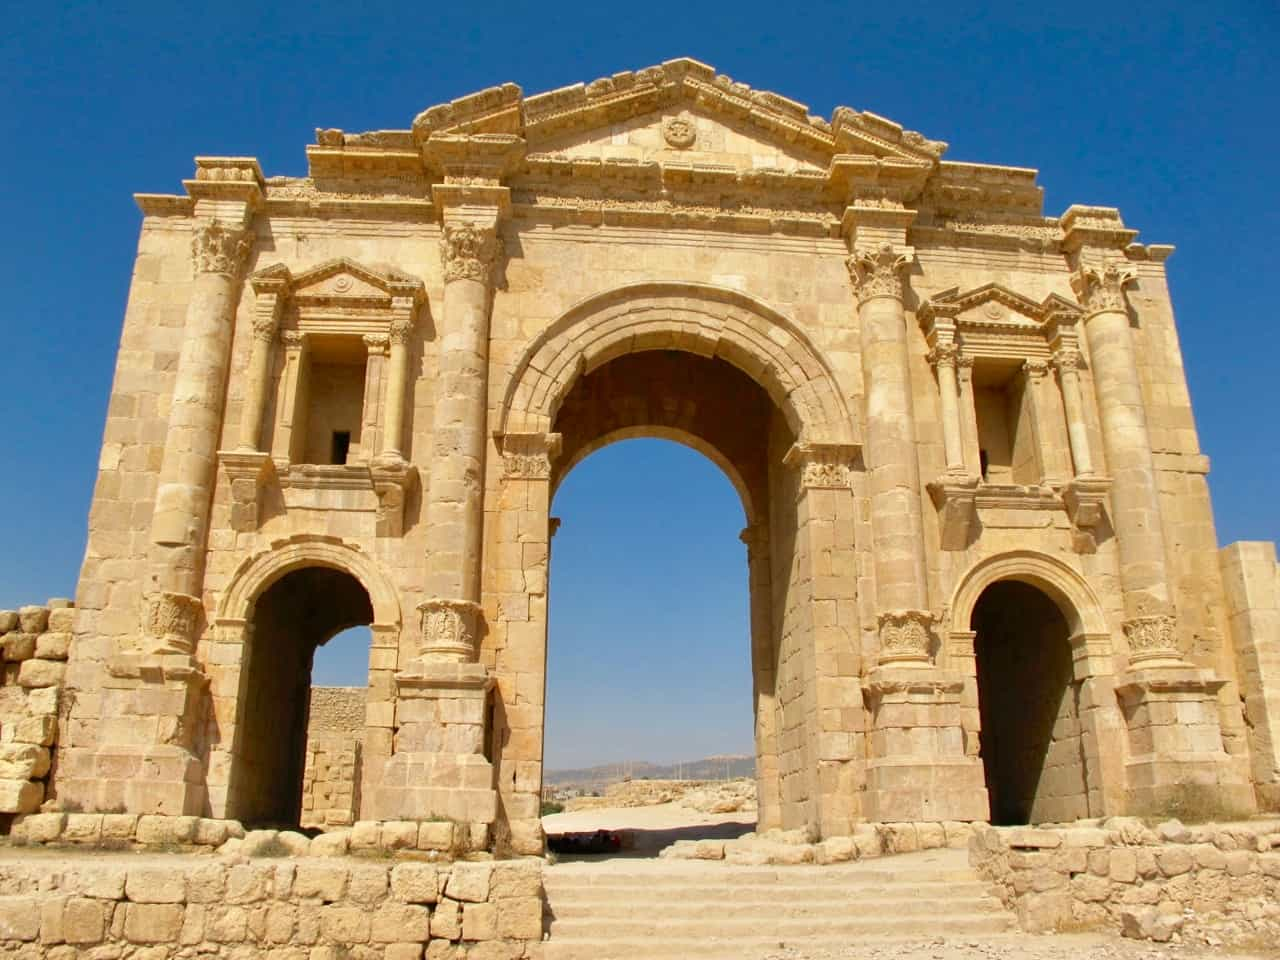 hadrians-arch-jerash-jordan-photo